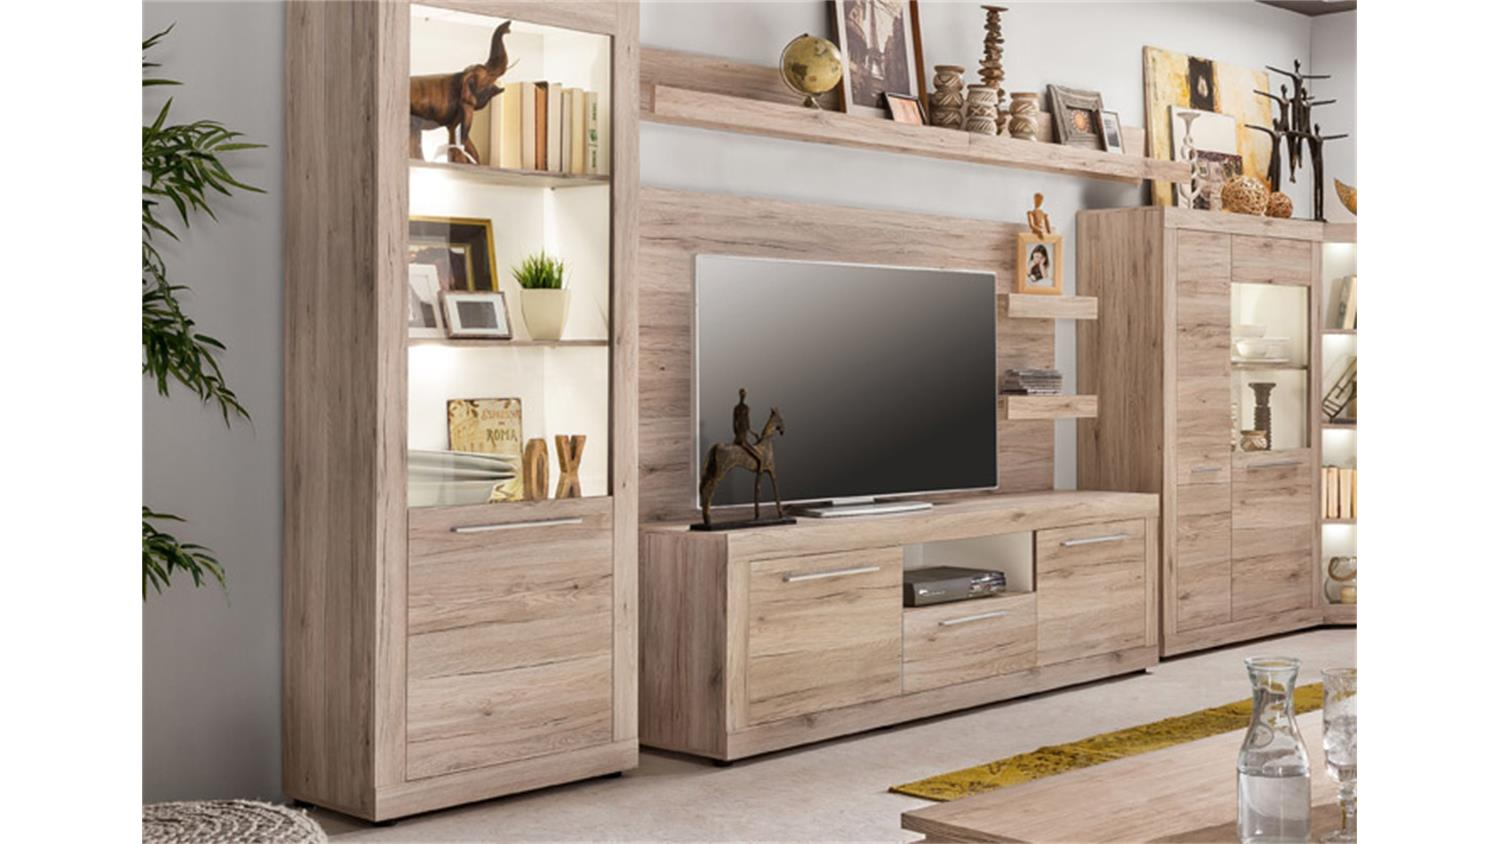 stauraumvitrine passat 2 t rige vitrine in eiche dekor mit glas. Black Bedroom Furniture Sets. Home Design Ideas